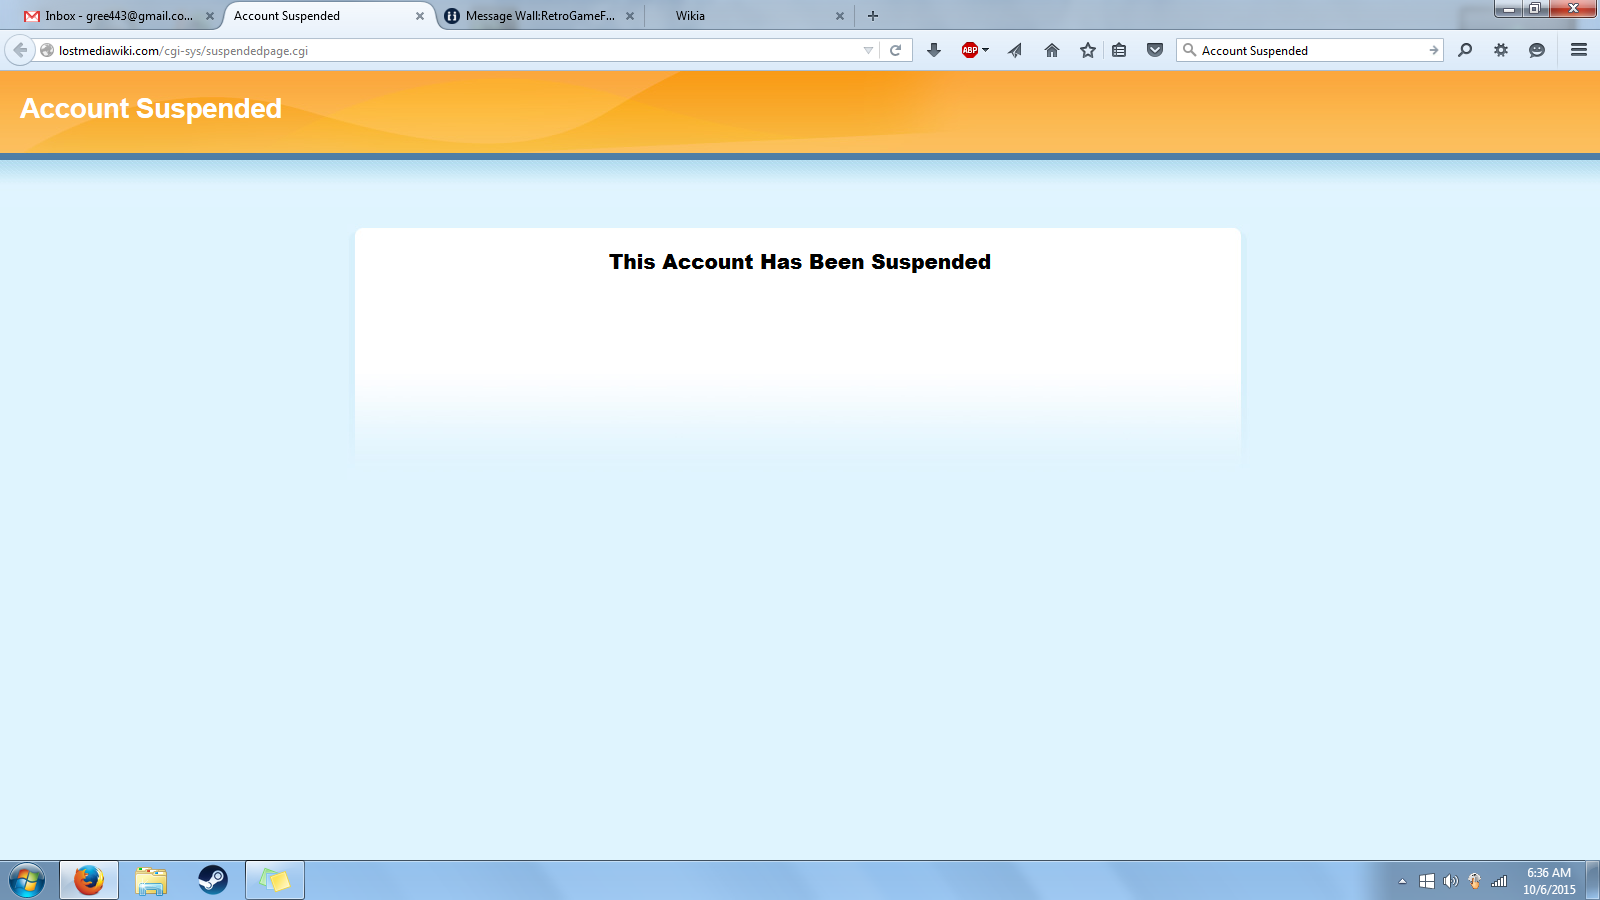 RetroGameFan9000/Why My Account was Suspended in the new wiki?